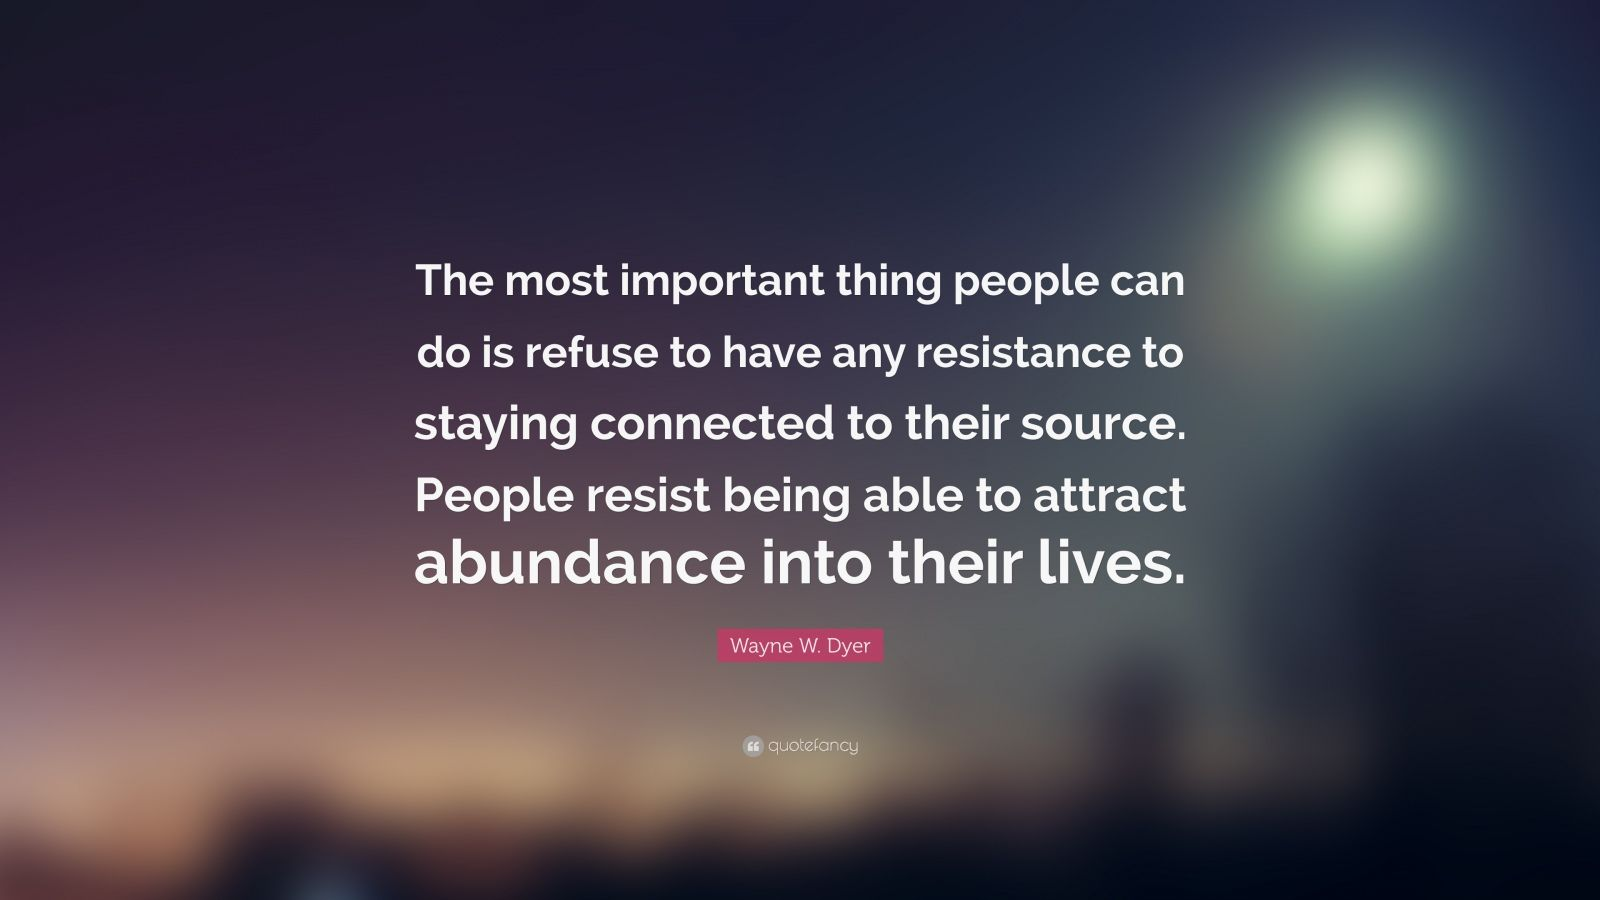 """Wayne W. Dyer Quote: """"The most important thing people can do is refuse to have any resistance to staying connected to their source. People resist being able to attract abundance into their lives."""""""